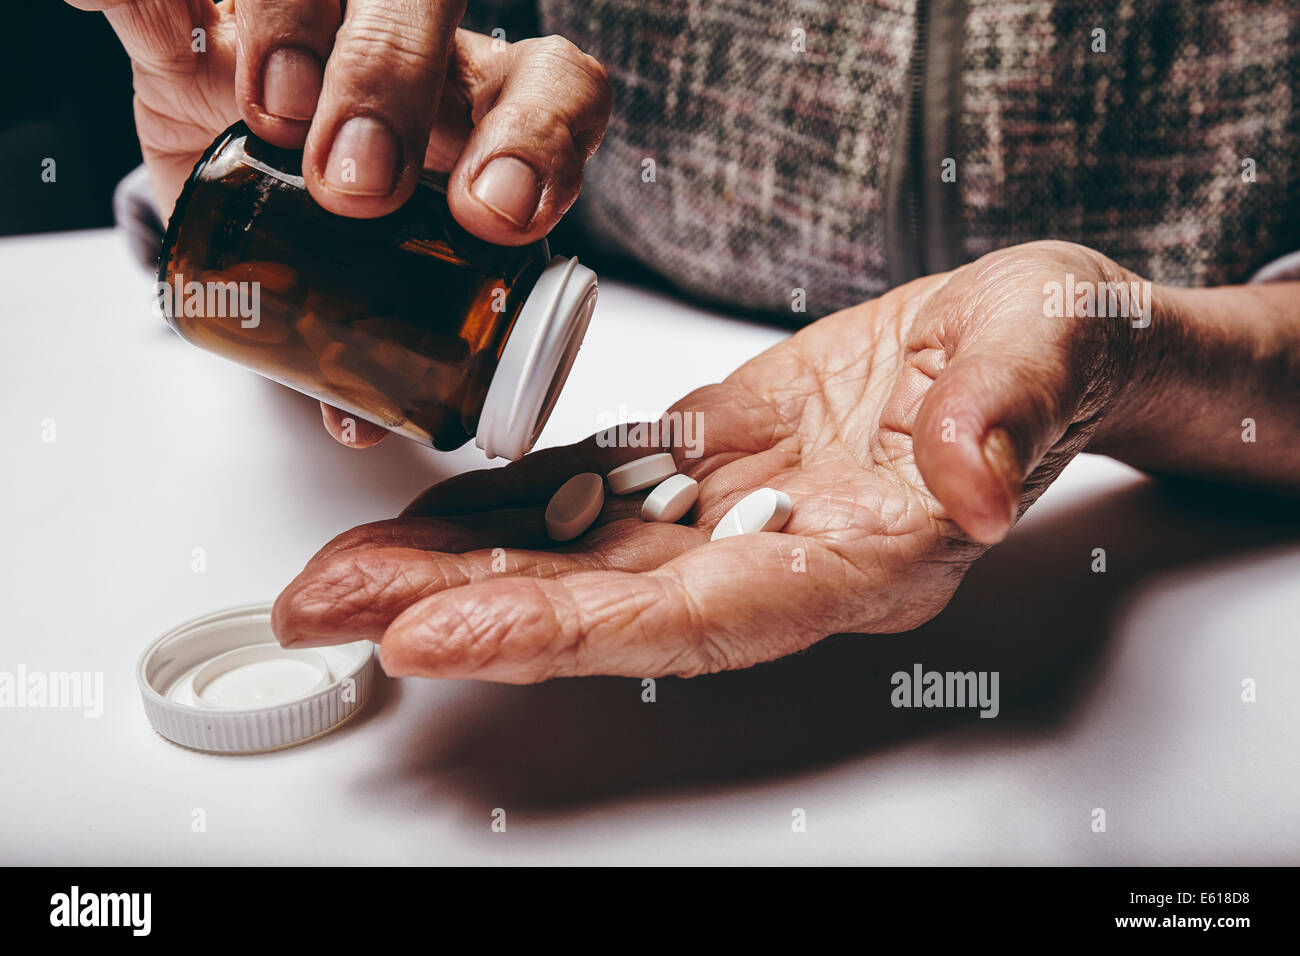 Close-up image of senior woman taking out pills from the pills bottle. Focus on hands. Old female taking medicines. - Stock Image